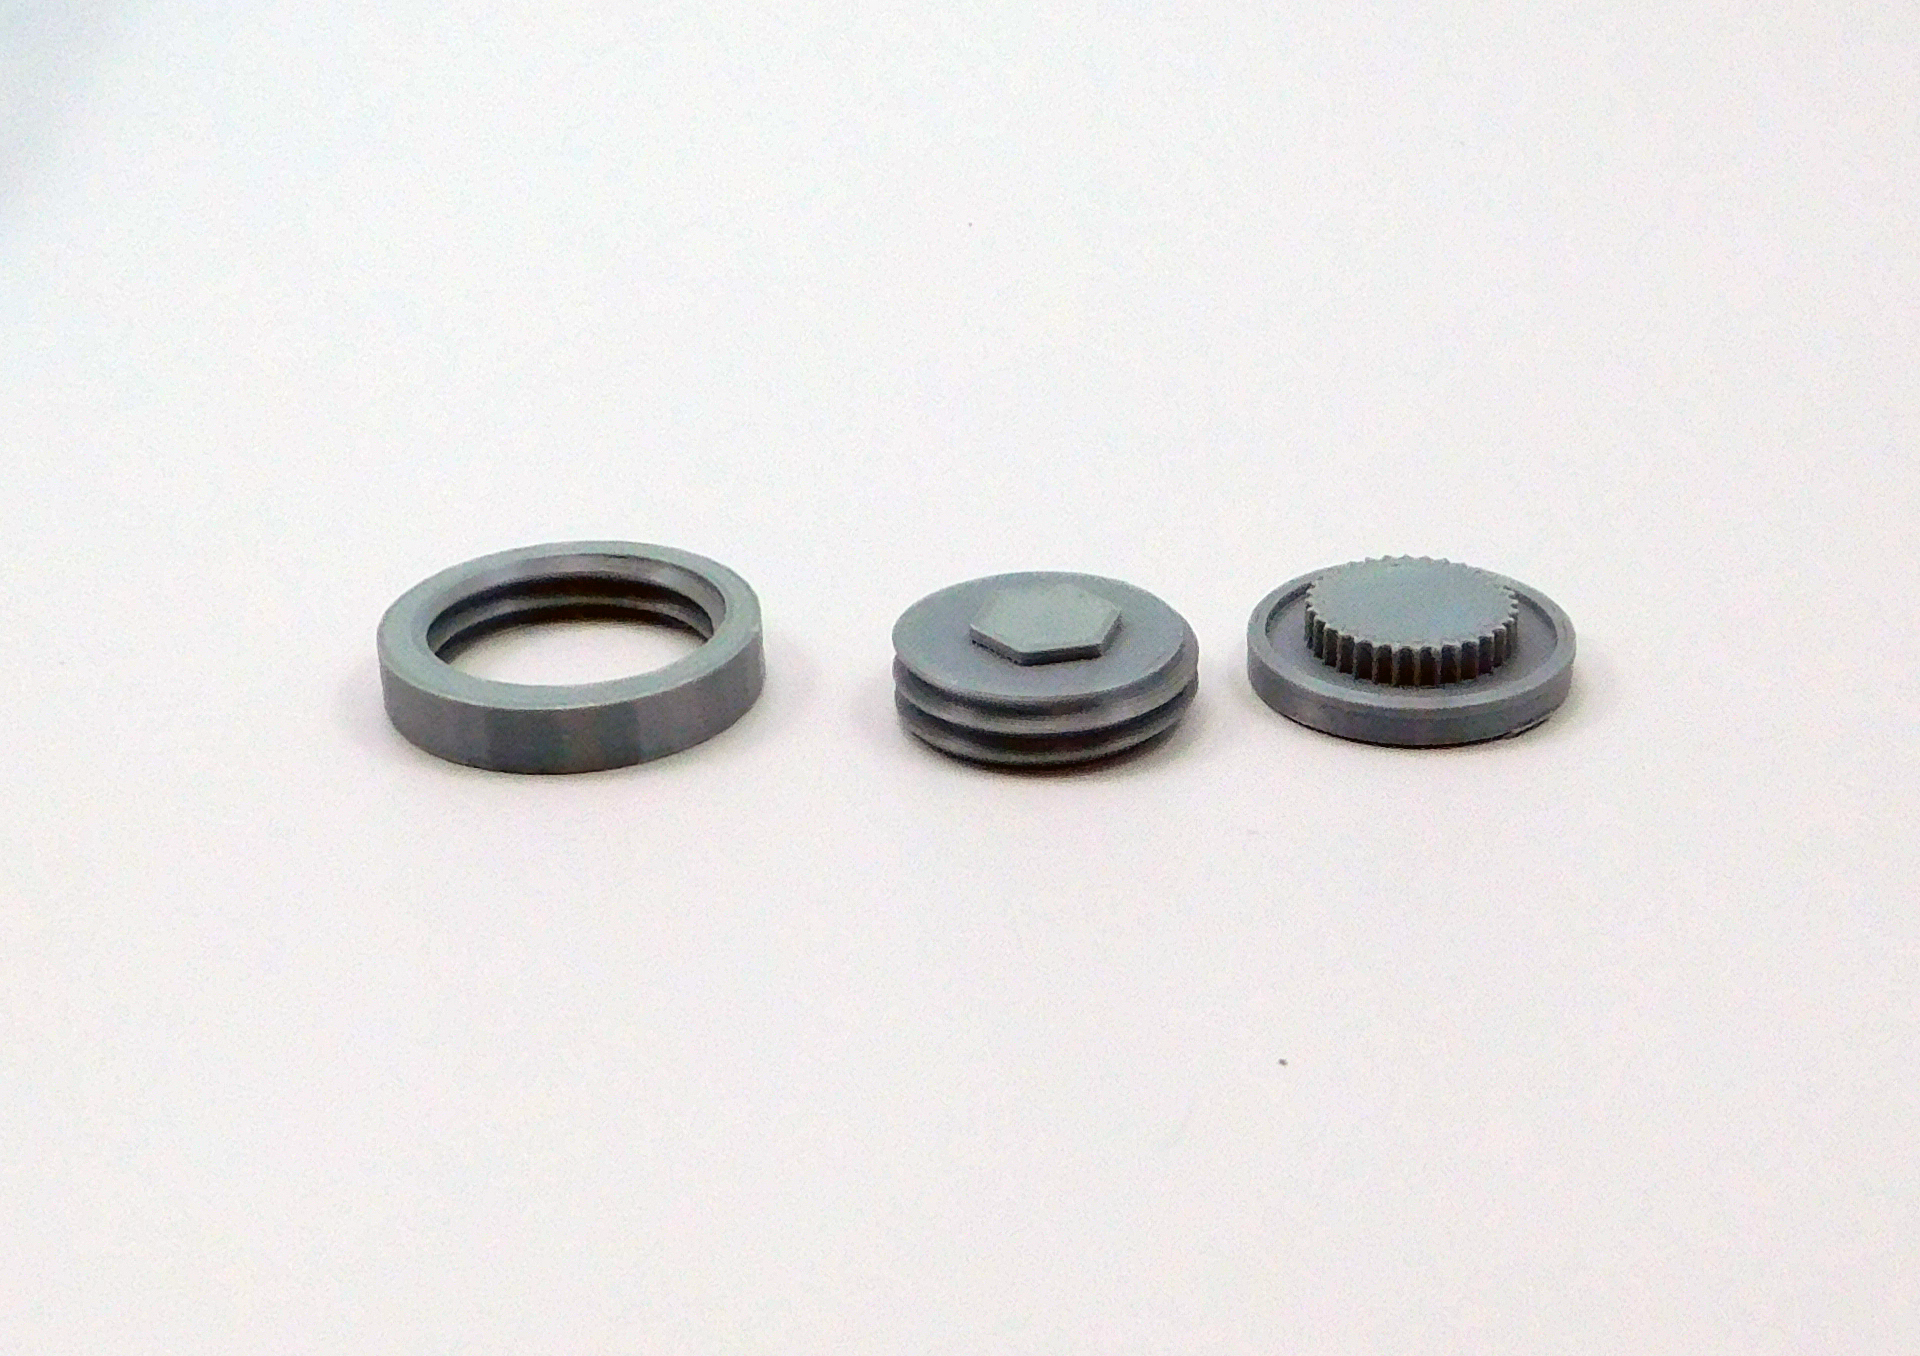 Picture of Model Assembly: Stopper and Threads